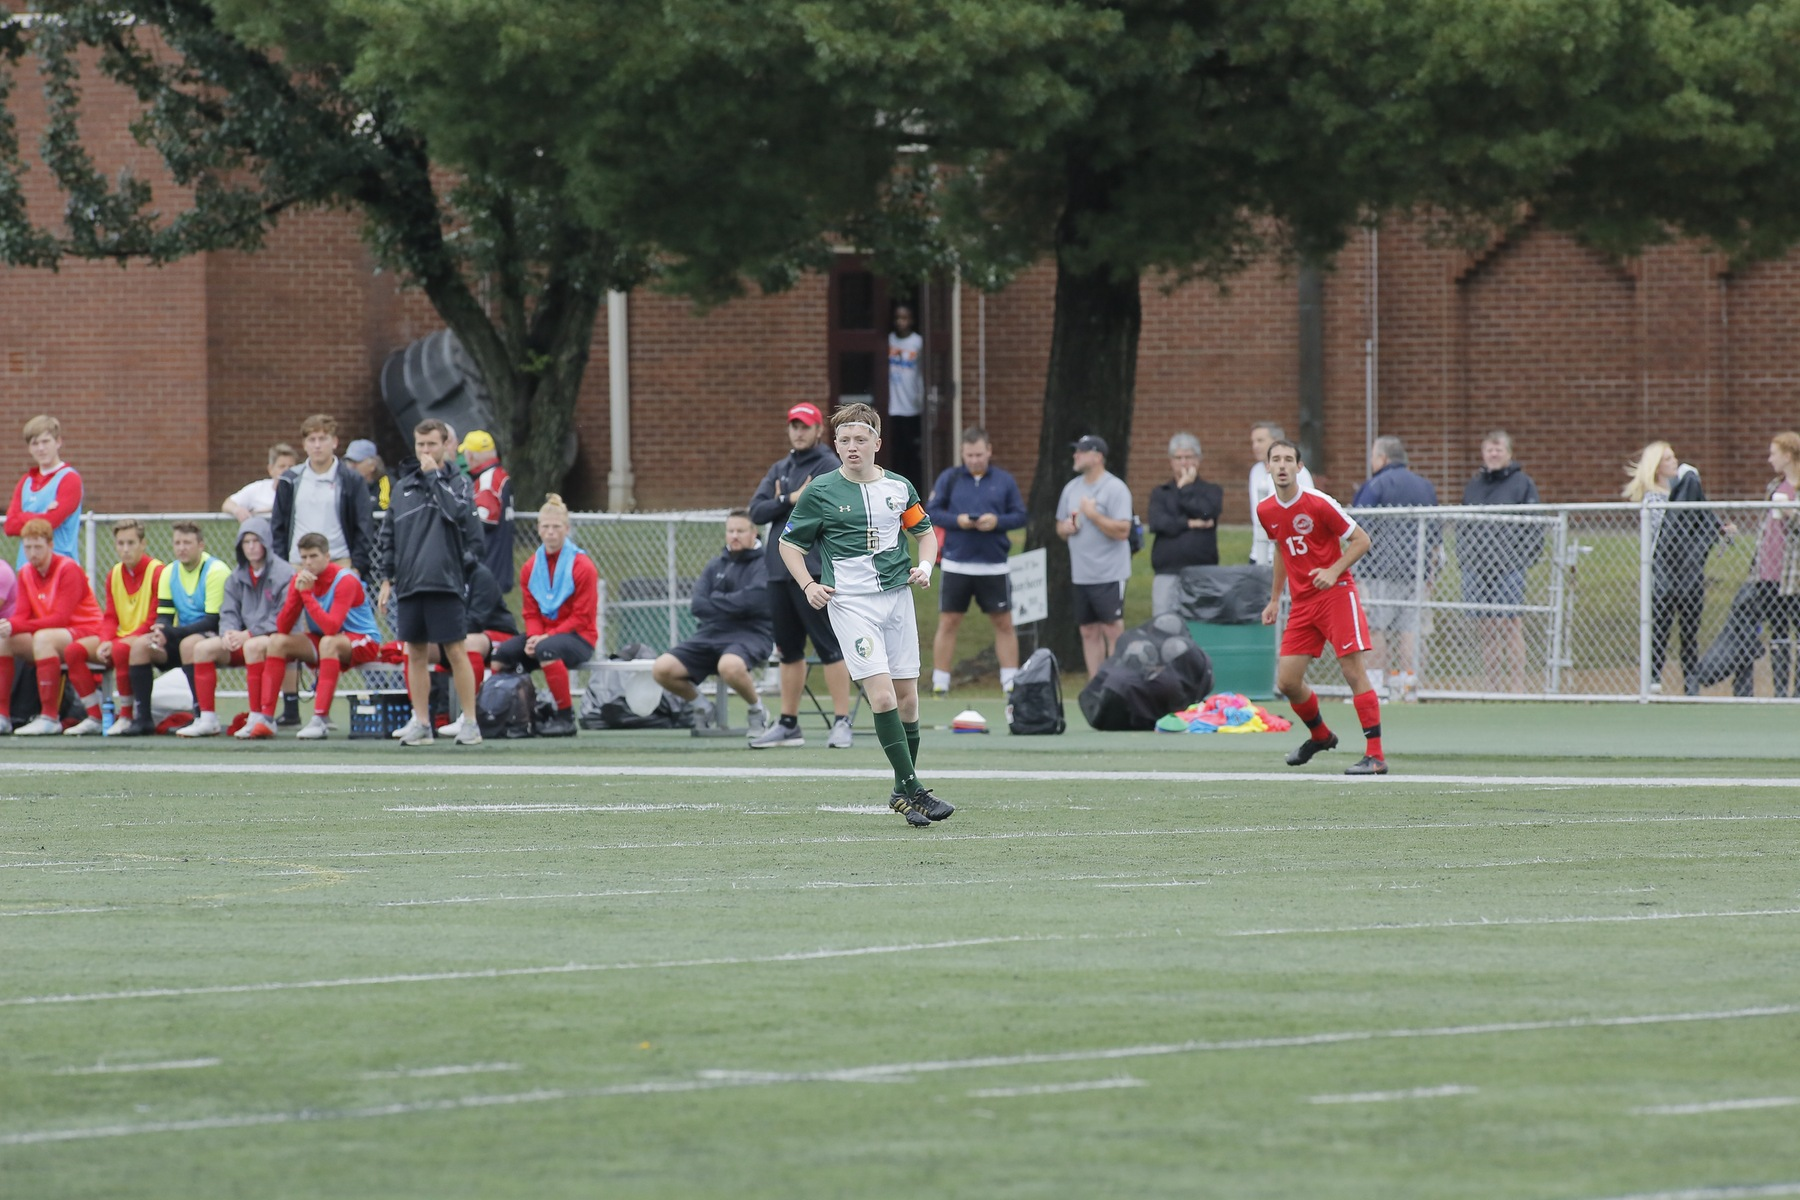 O'Donnell's Overtime Goal Pushes Bethany Past Alfred St.